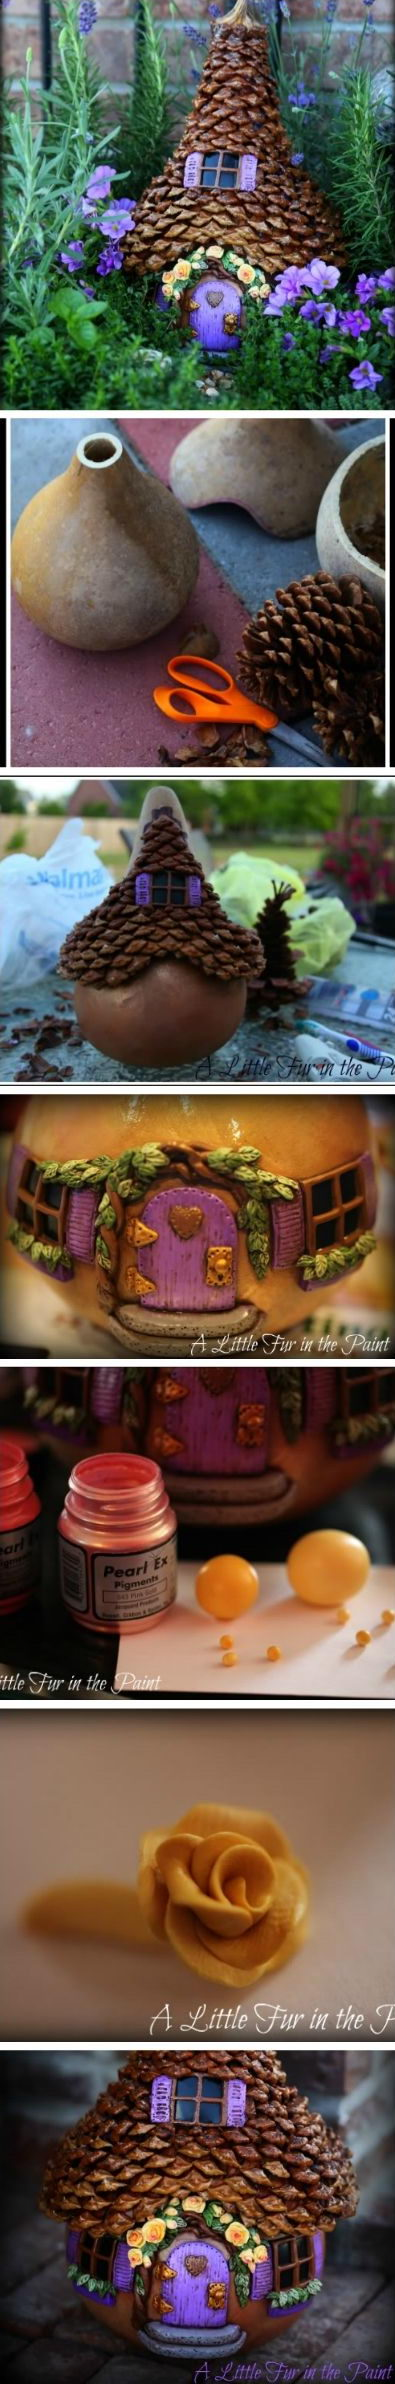 Unusual Diy Fairy House Using Pinecones Diy Fairy Garden Ideas Tutorials 2017 Diy Fairy Gardens Pinterest Youtube Diy Fairy Gardens garden Diy Fairy Gardens